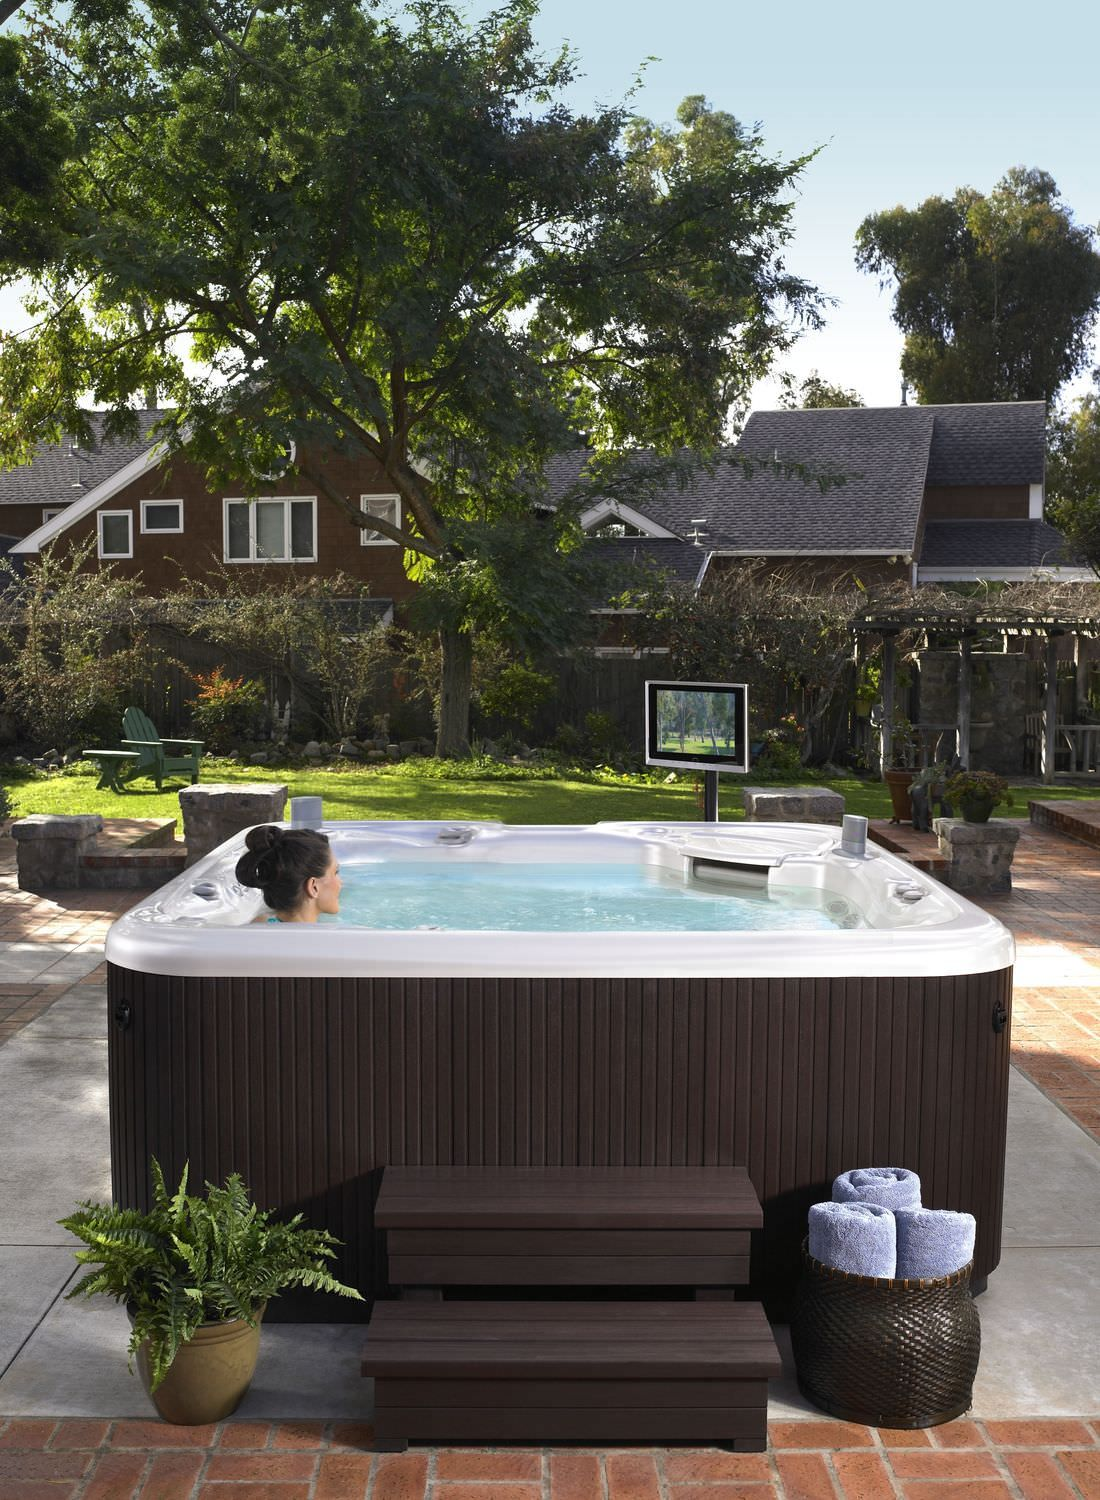 aria hot spring spa seats 5 in celebration of their. Black Bedroom Furniture Sets. Home Design Ideas